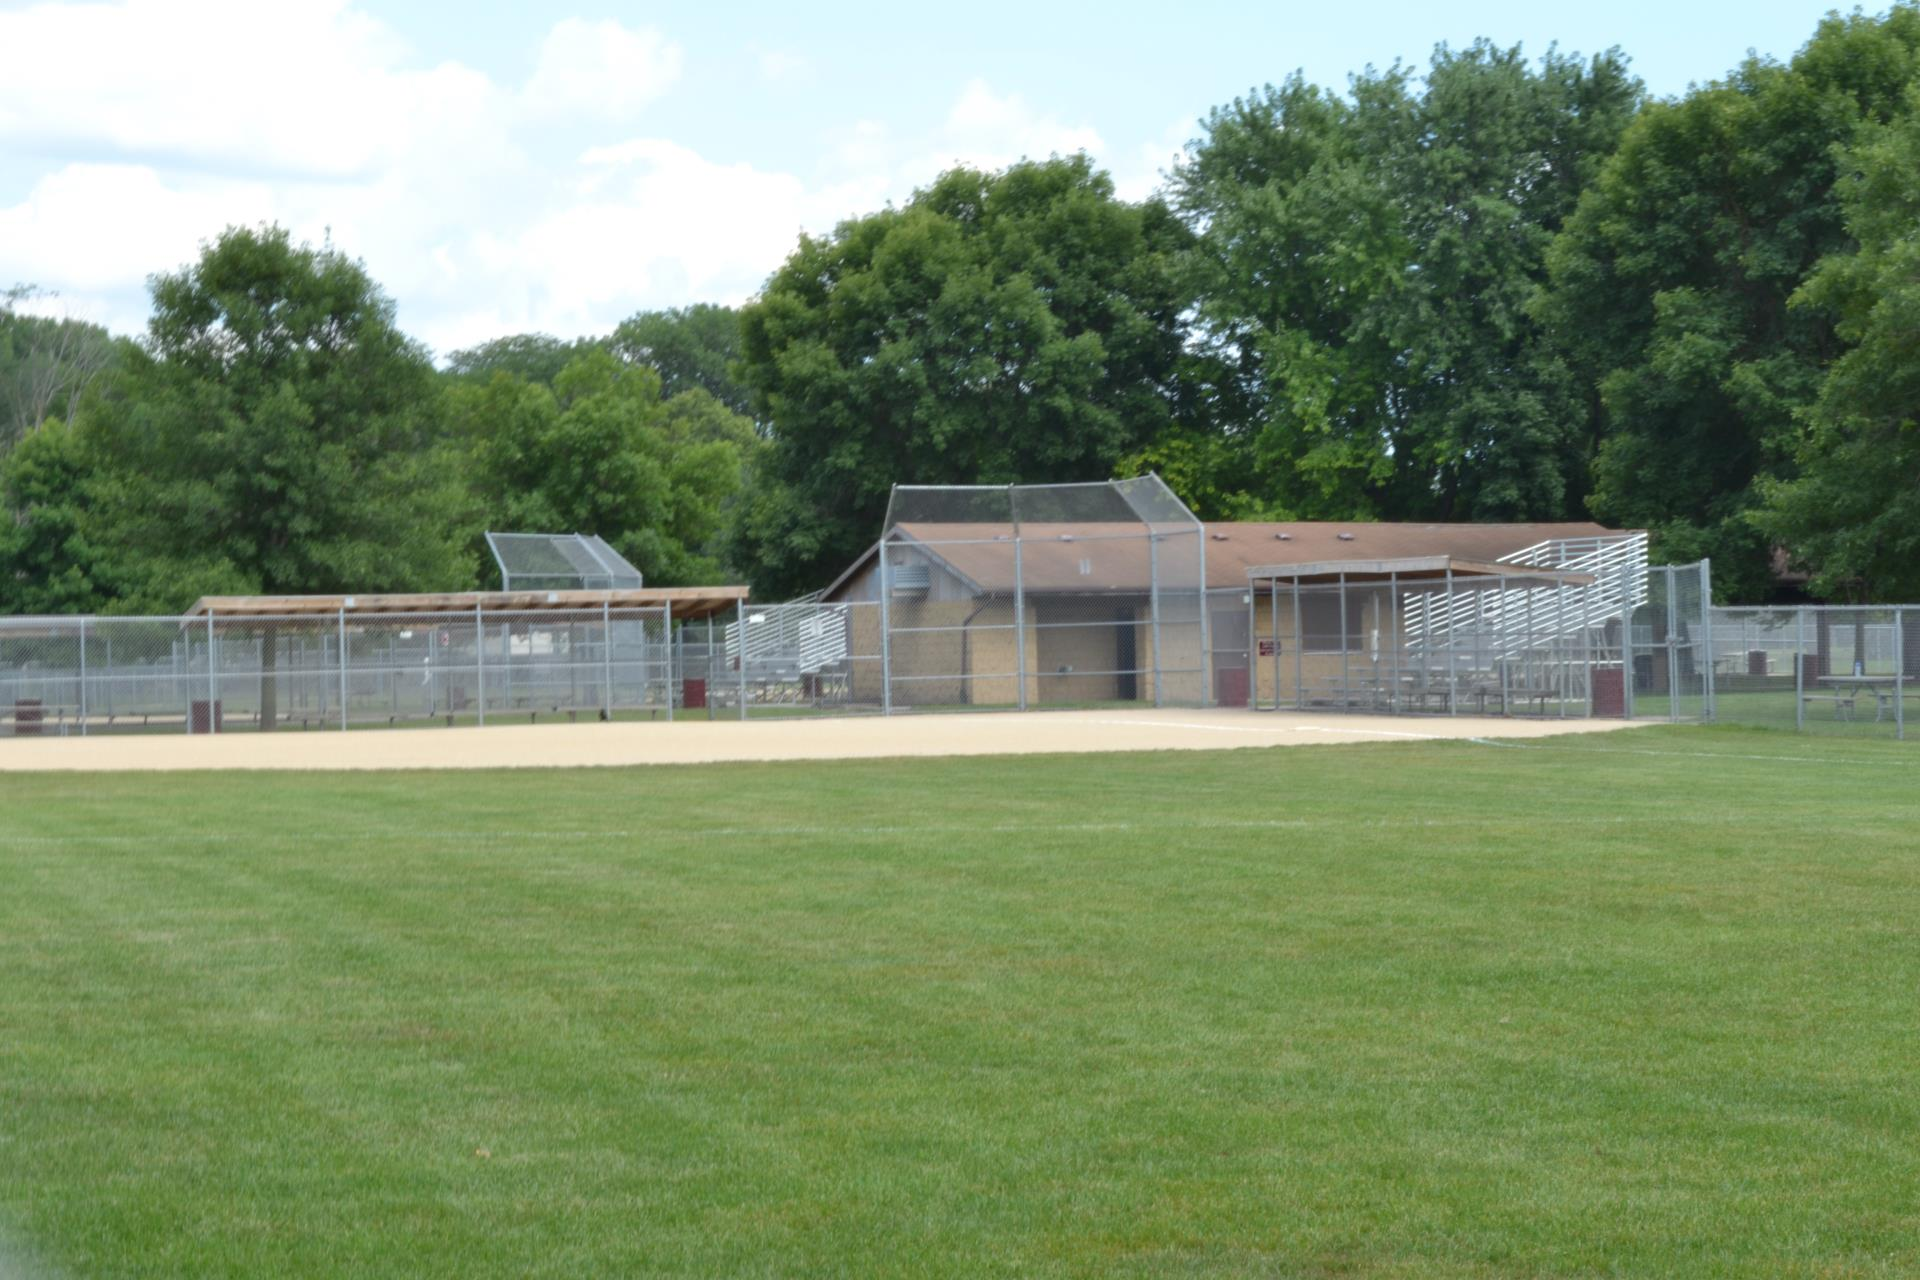 Ball diamond at River Valley park